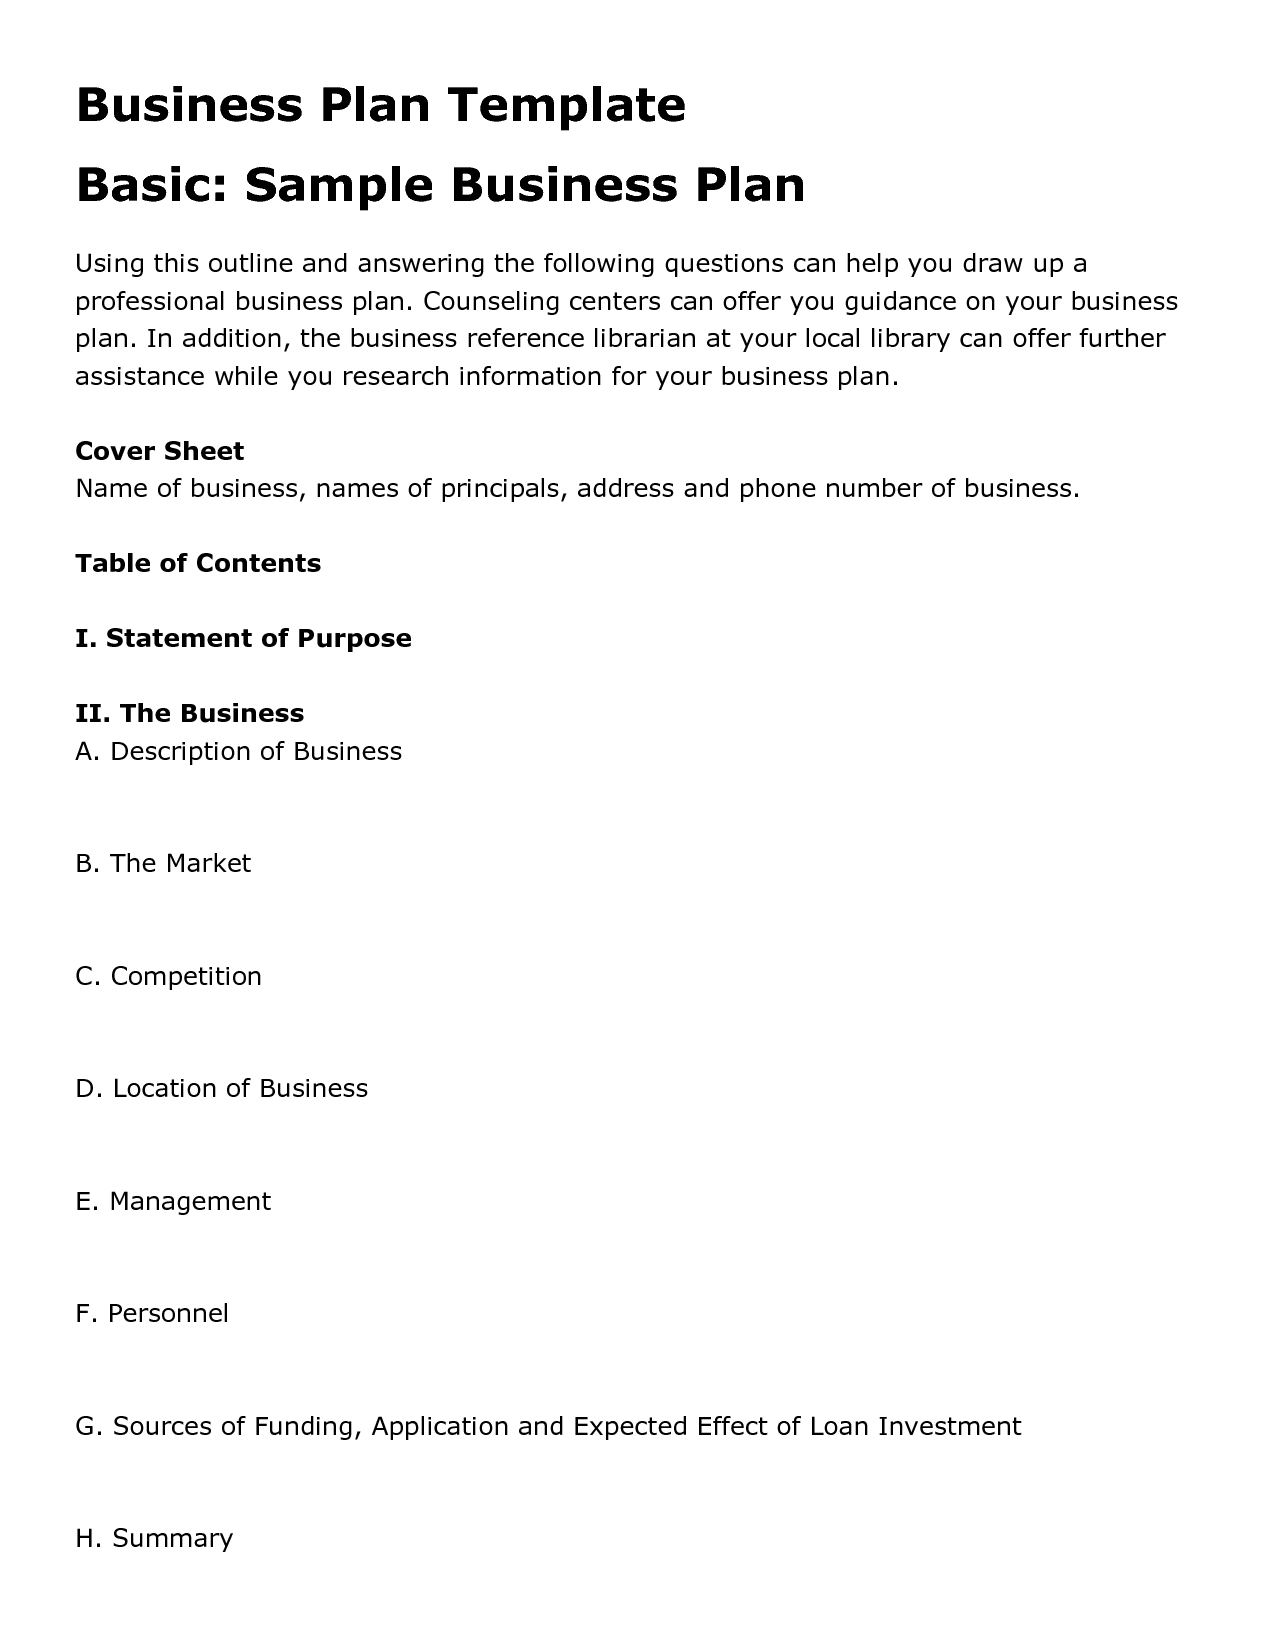 Get Business Plan Template forms free printable. With premium